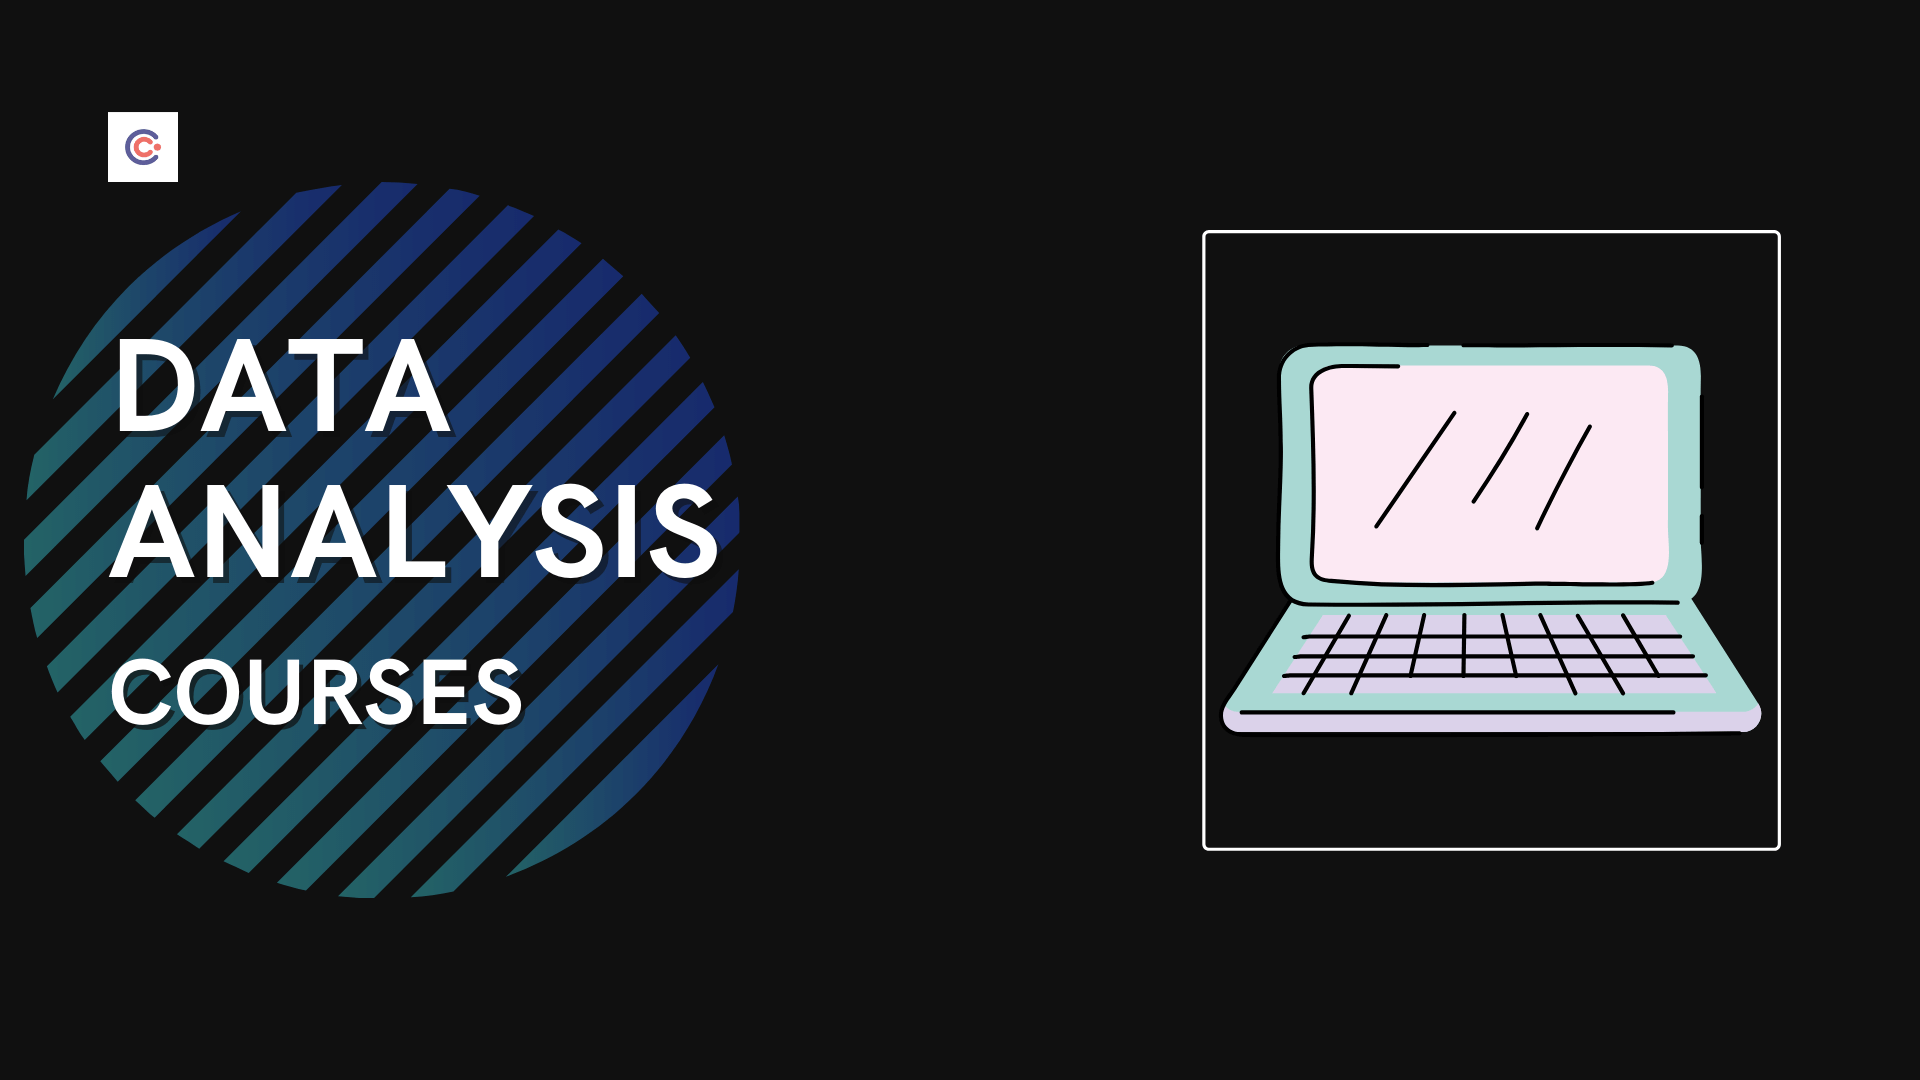 13 Best Data Analysis Courses - Learn Data Analysis Online